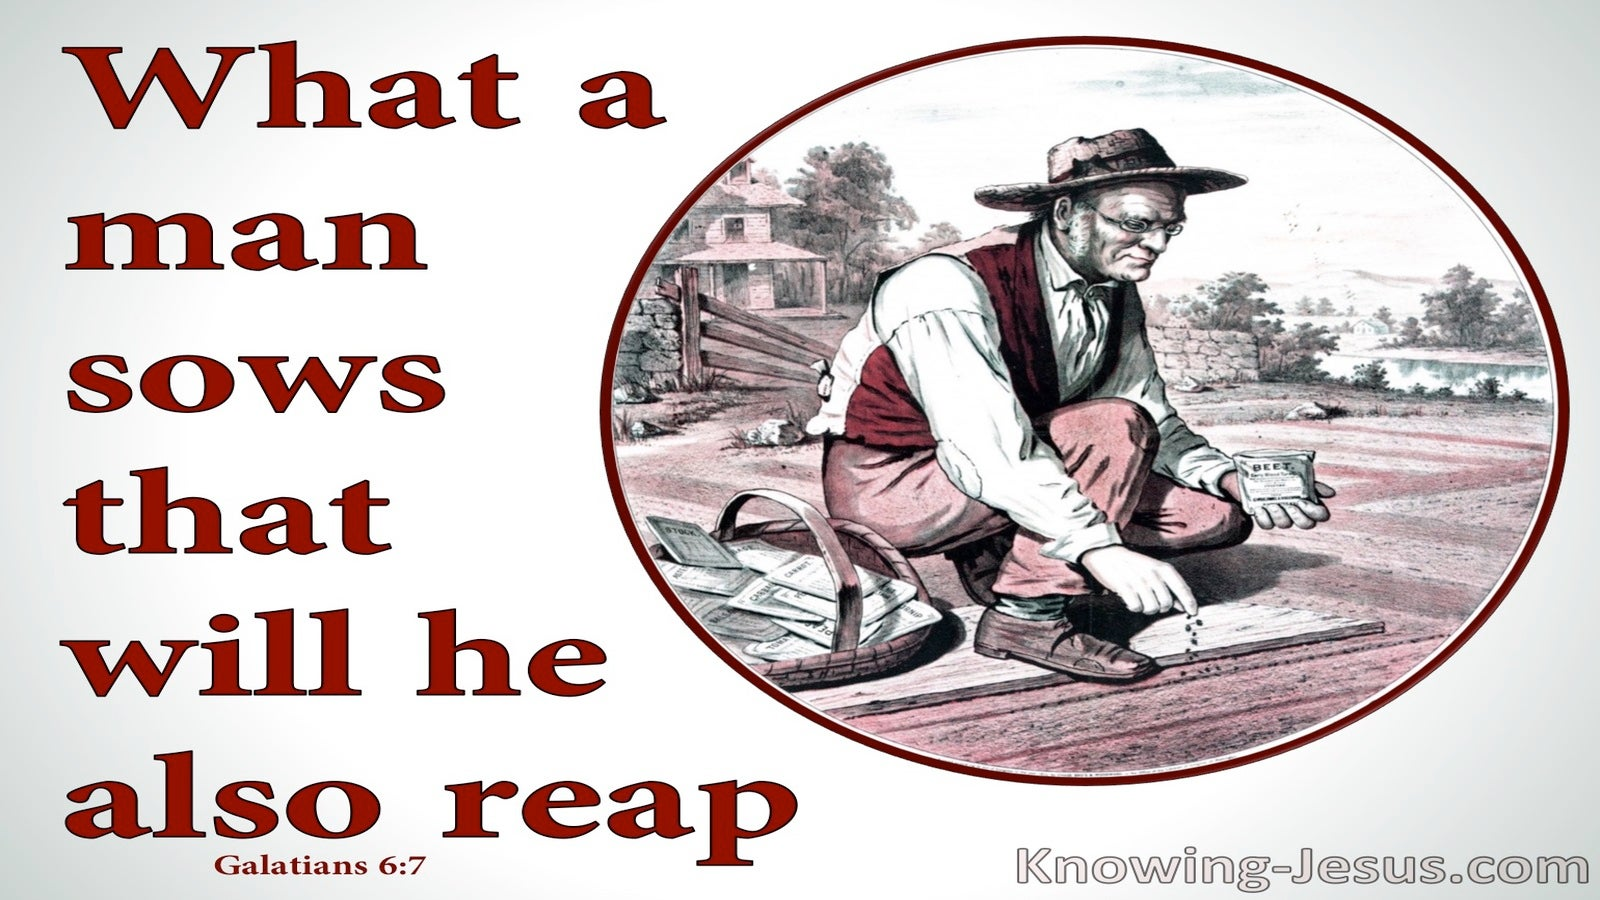 Galatians 6:7 What An Man Sows He Will Reap (red)